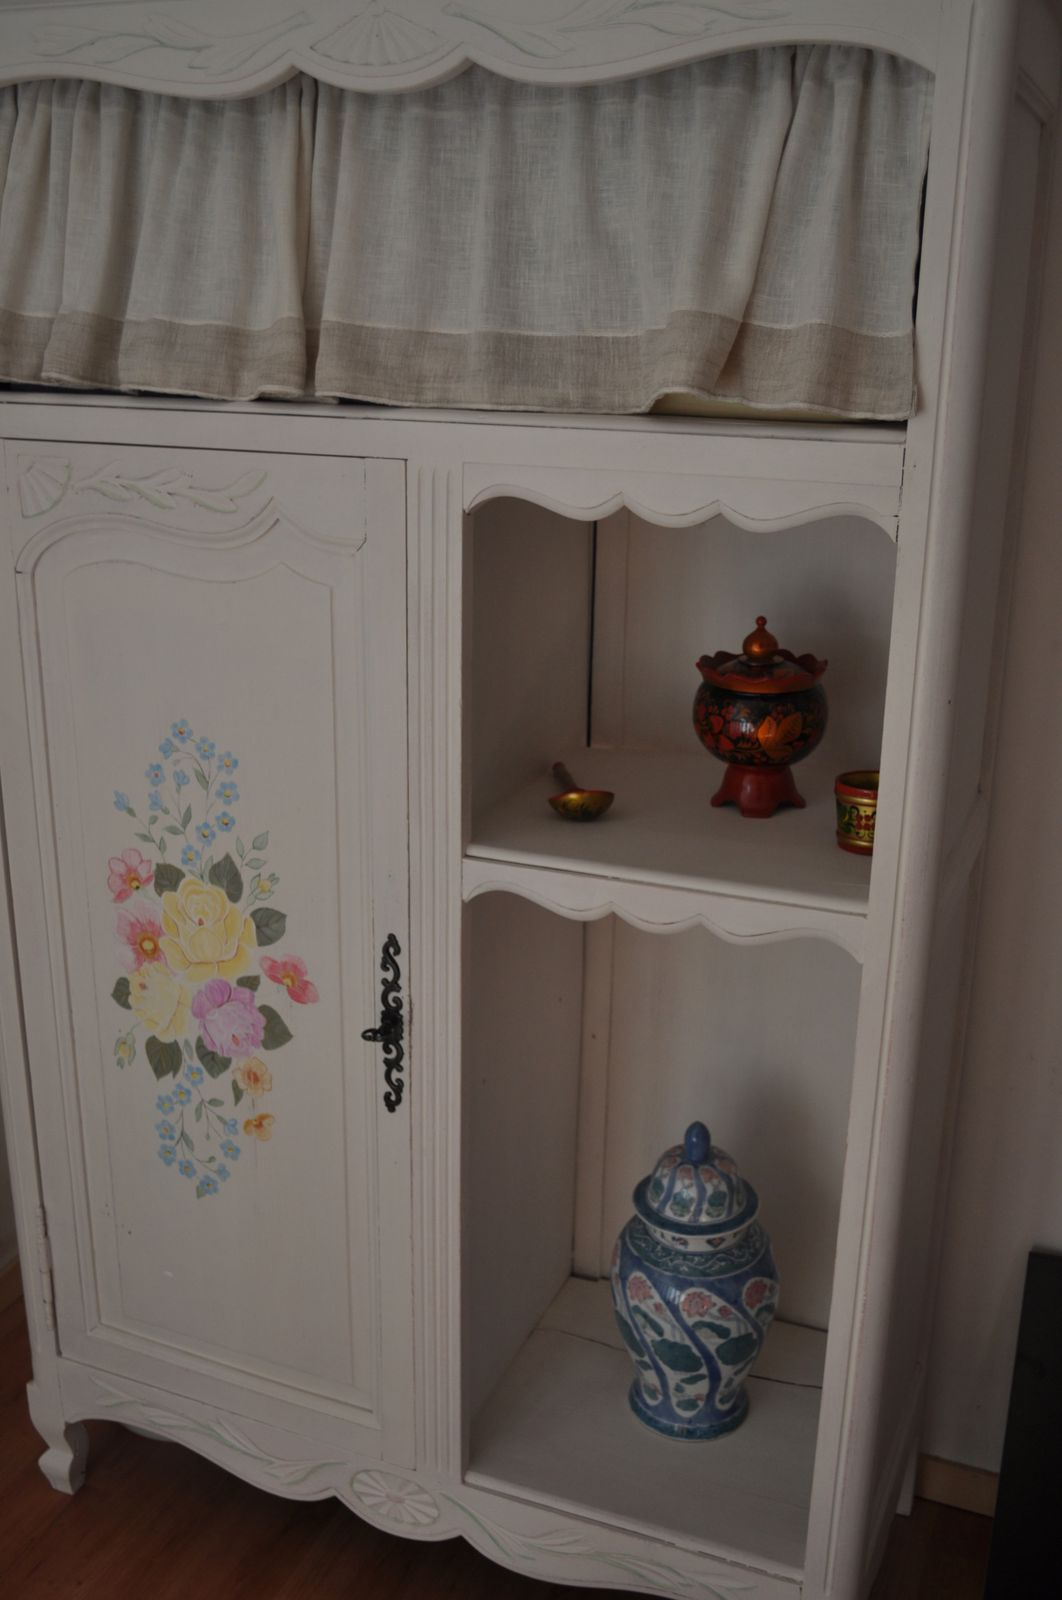 peindre ses meubles affordable chevet with peindre ses meubles simple peindre ses meubles de. Black Bedroom Furniture Sets. Home Design Ideas